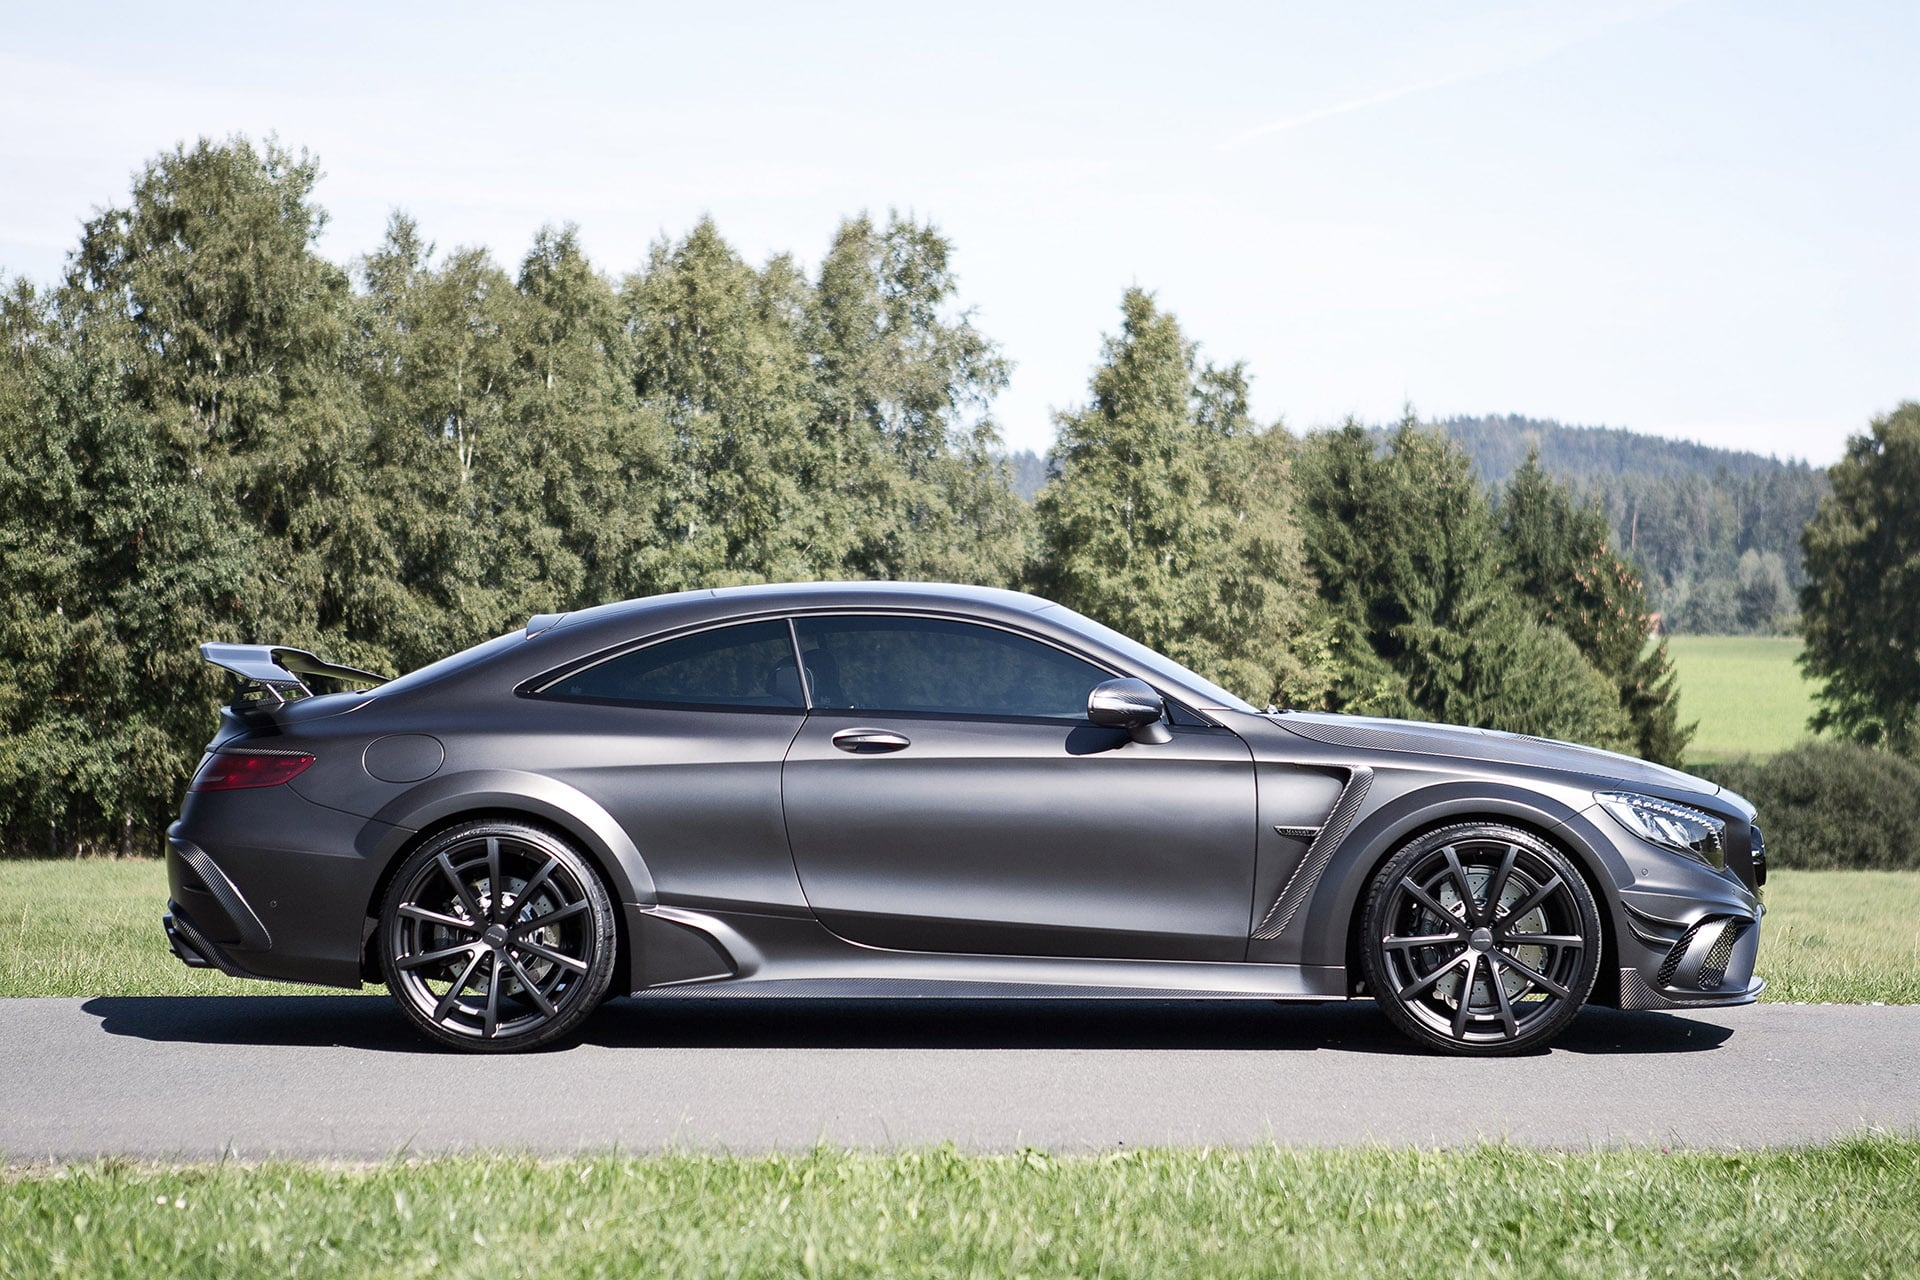 Mercedes Benz Amg >> Mercedes-Benz AMG S63 Coupe wallpapers HD Download